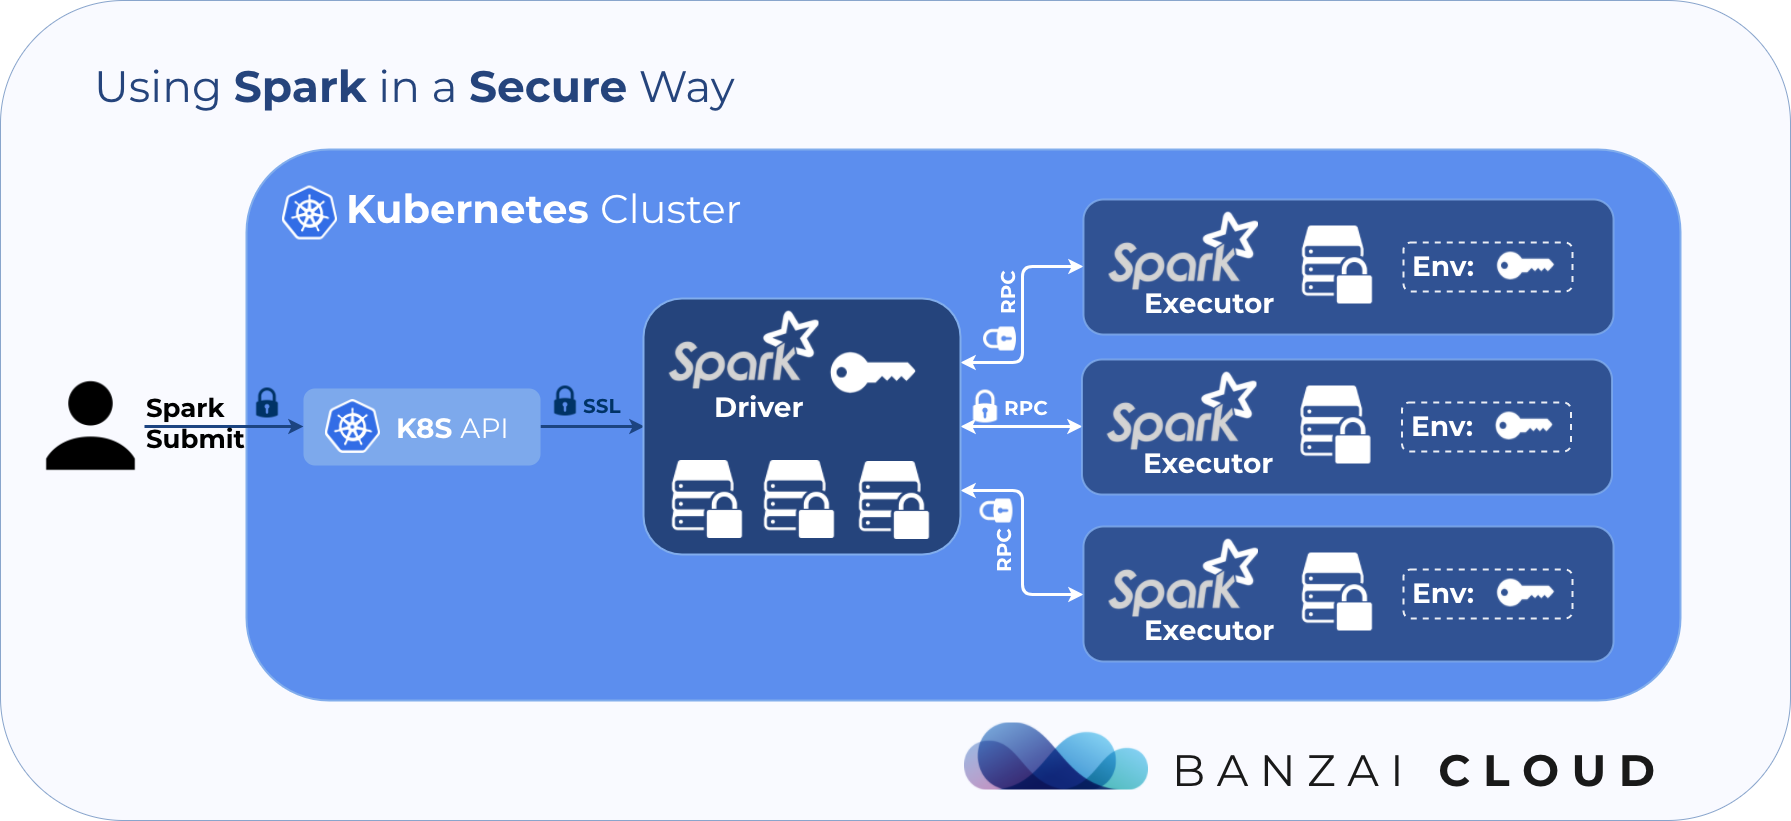 Running Spark applications securely on Kubernetes · Banzai Cloud